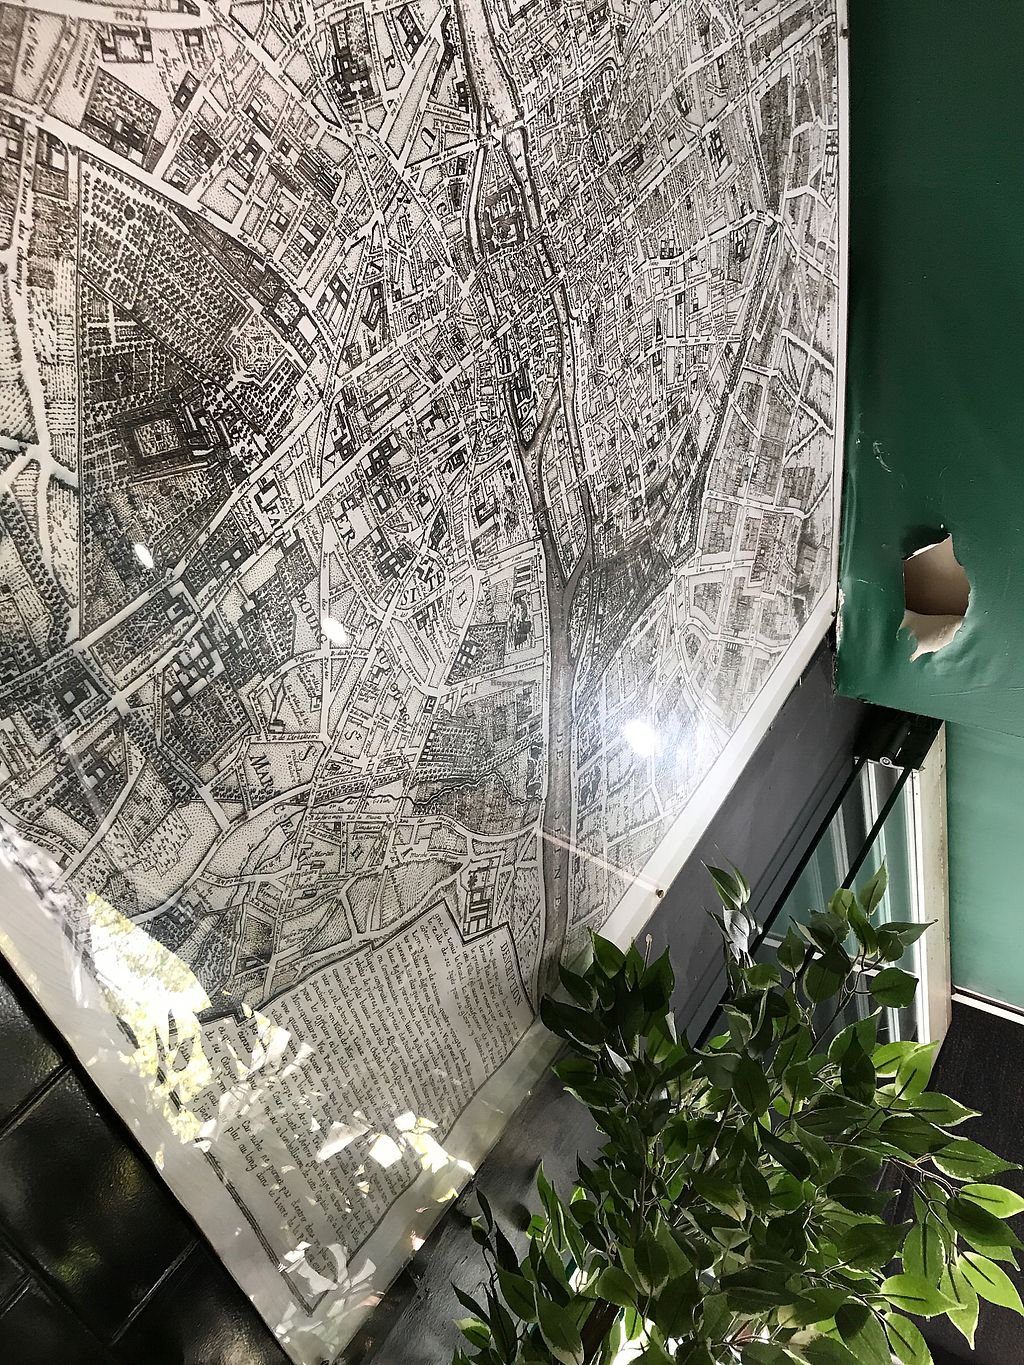 """Photo of Gourmandise de Paris  by <a href=""""/members/profile/kikapetrovic"""">kikapetrovic</a> <br/>Paris map on the wall <br/> March 3, 2018  - <a href='/contact/abuse/image/112428/366007'>Report</a>"""